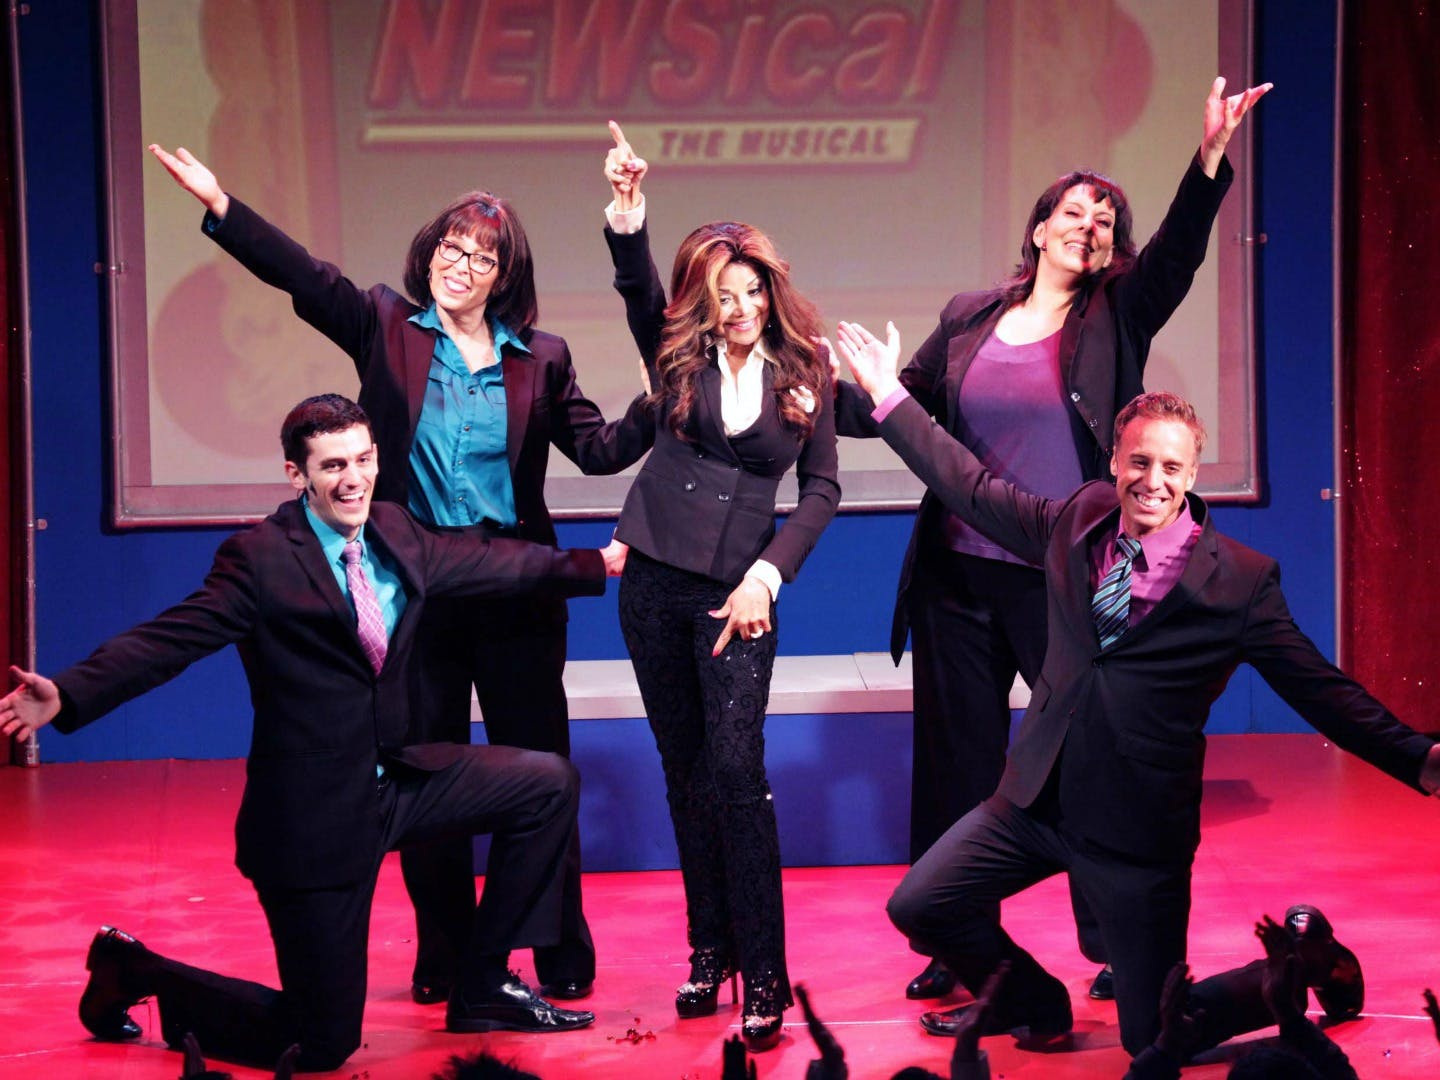 newsical the musical 2